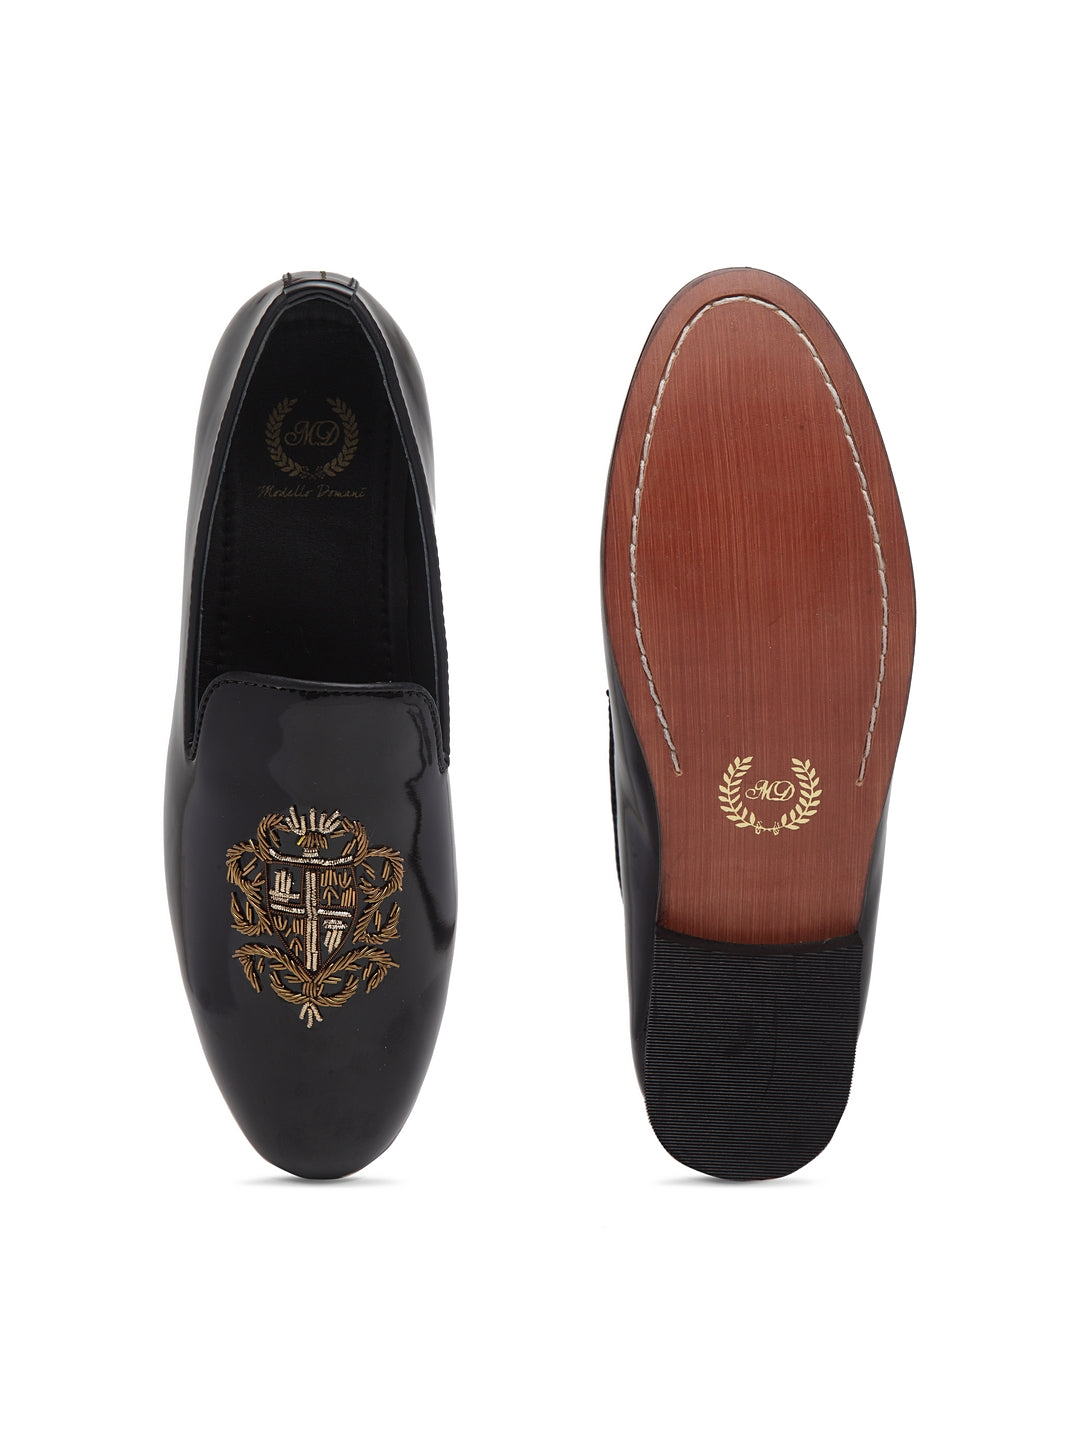 The Royal Crest© Slipons (Patent Black)